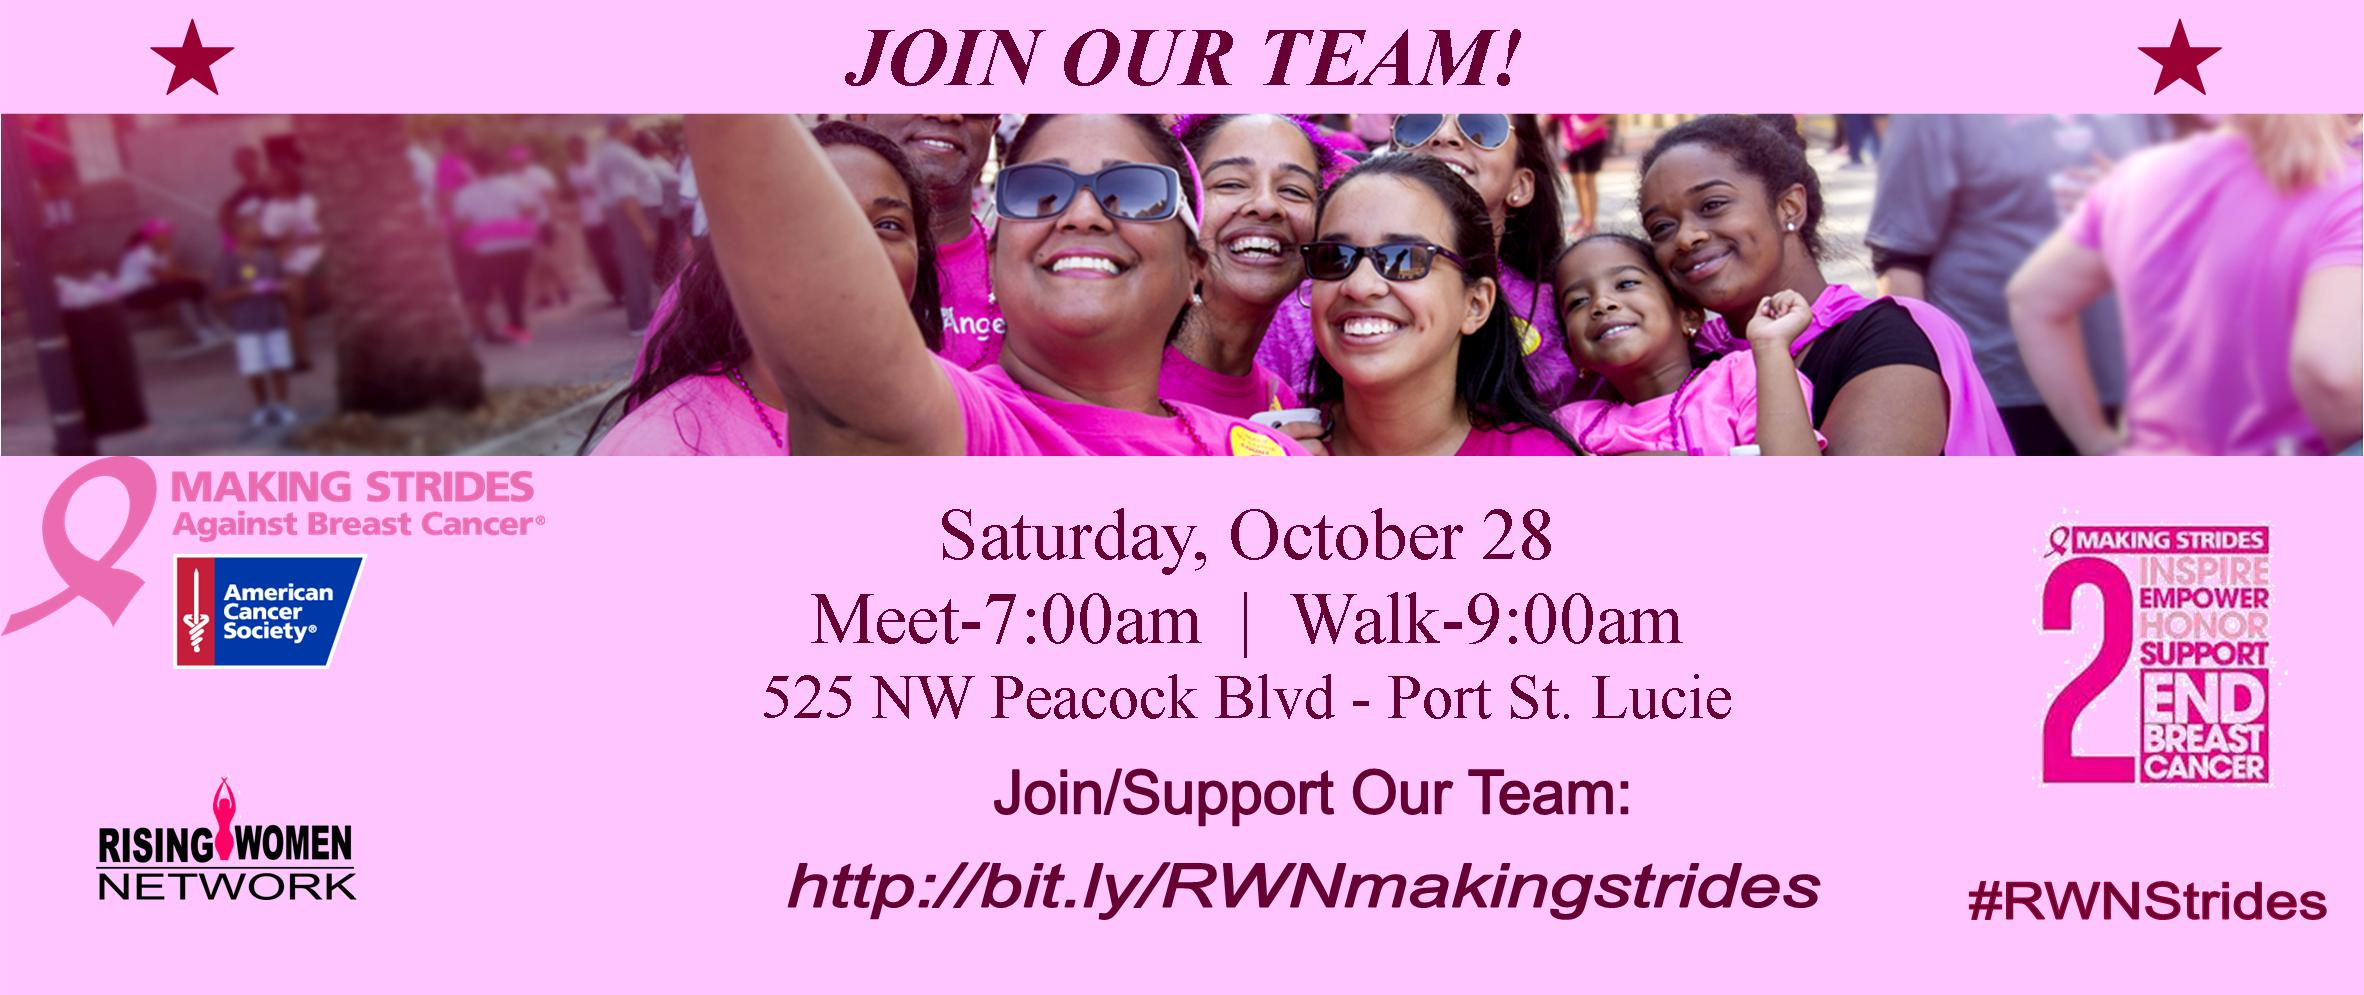 Making Strides Against Breast Cancer walks unite communities behind the American Cancer Society's efforts to save lives from breast cancer.